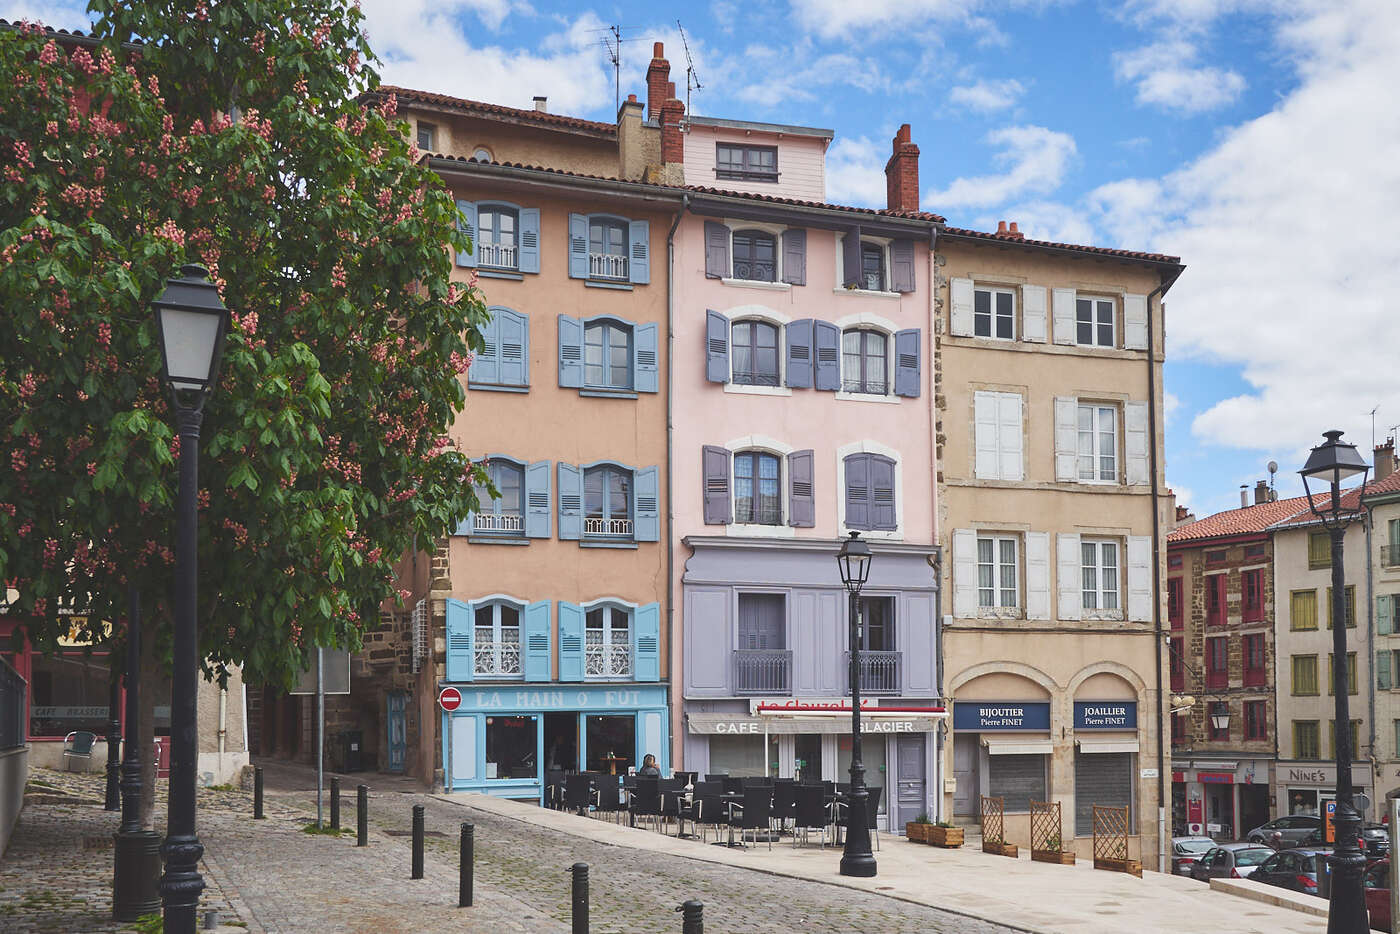 Place de l'office de tourisme, Puy-en-Velay